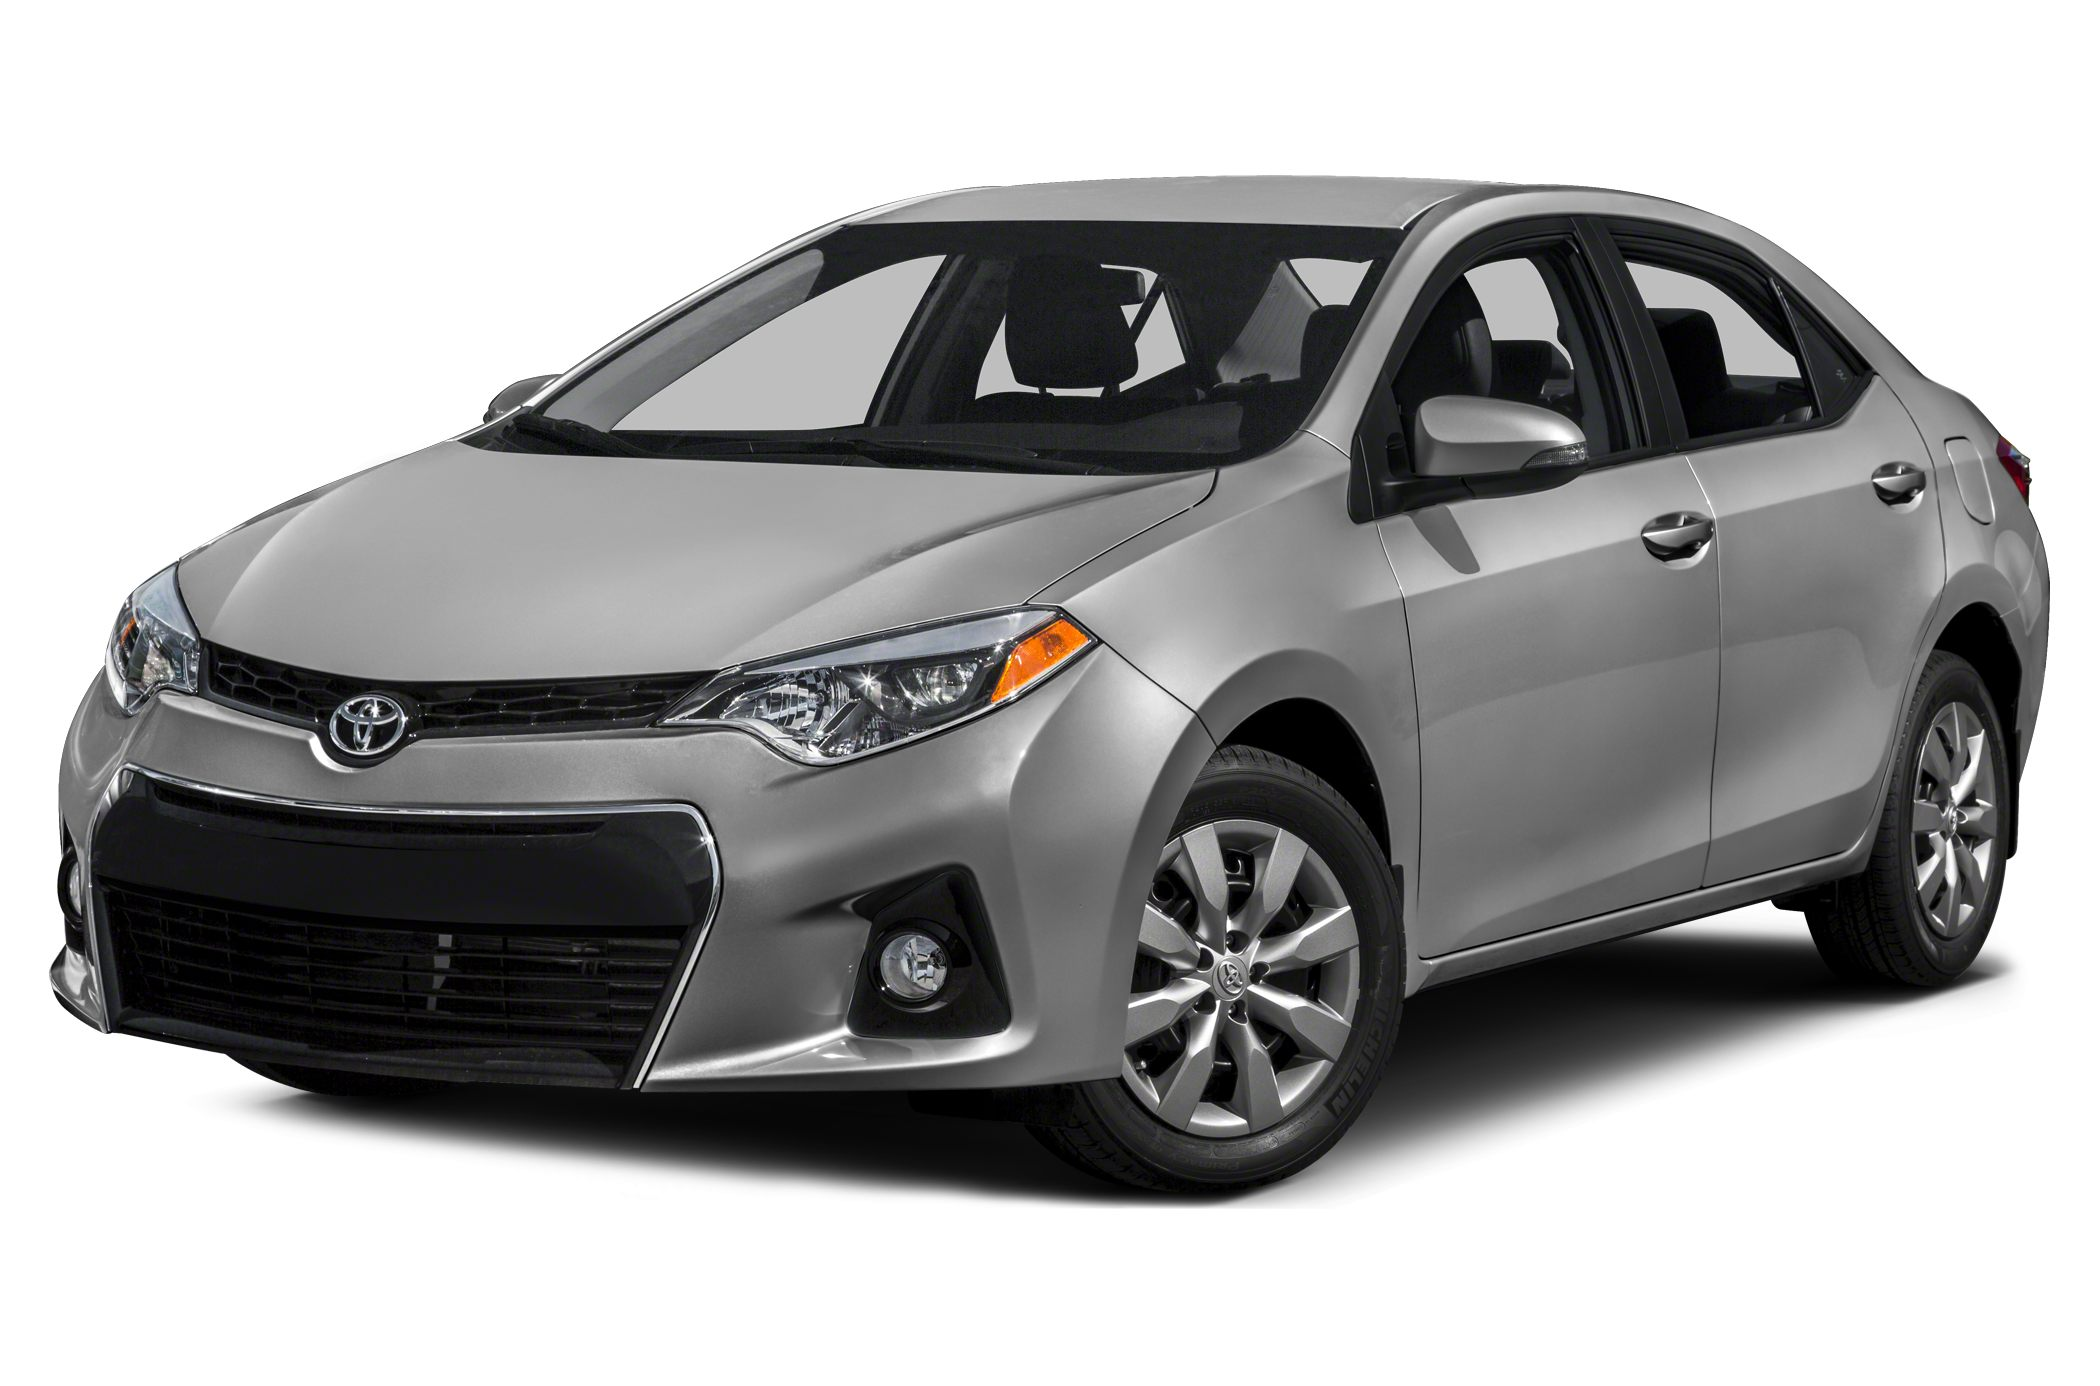 2015 Toyota Corolla S Plus Sedan for sale in Staunton for $20,895 with 4,864 miles